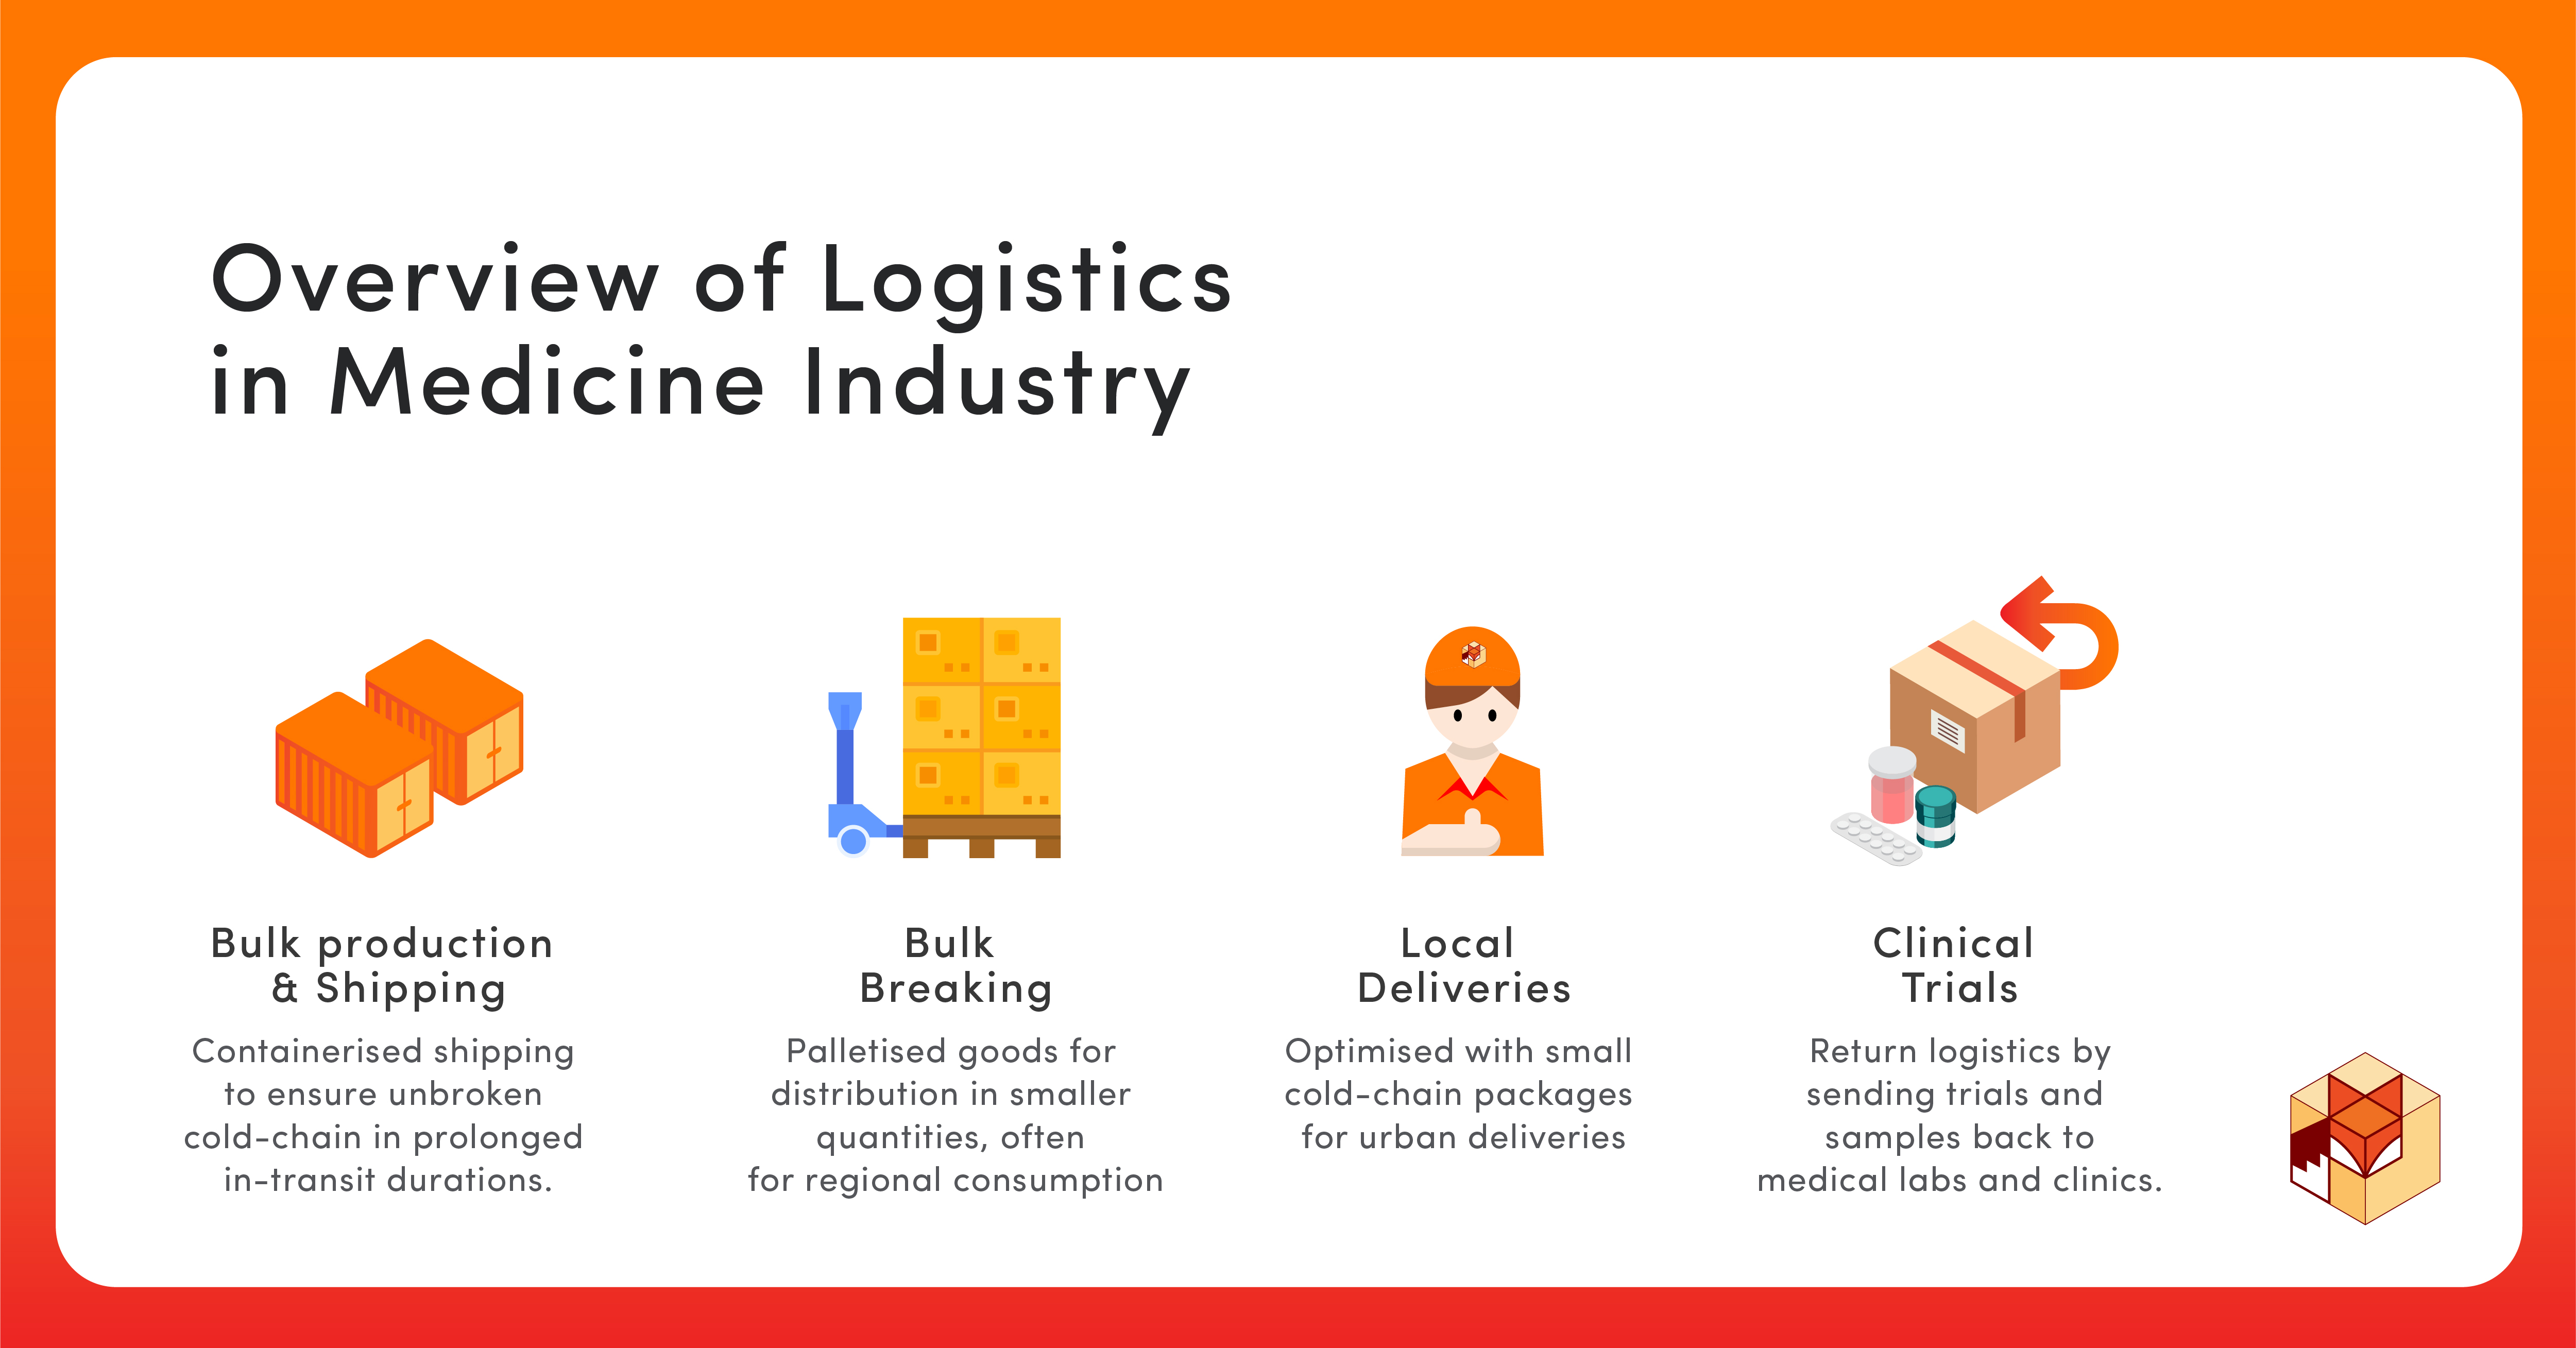 Overview of Logistics in the Medication Industry